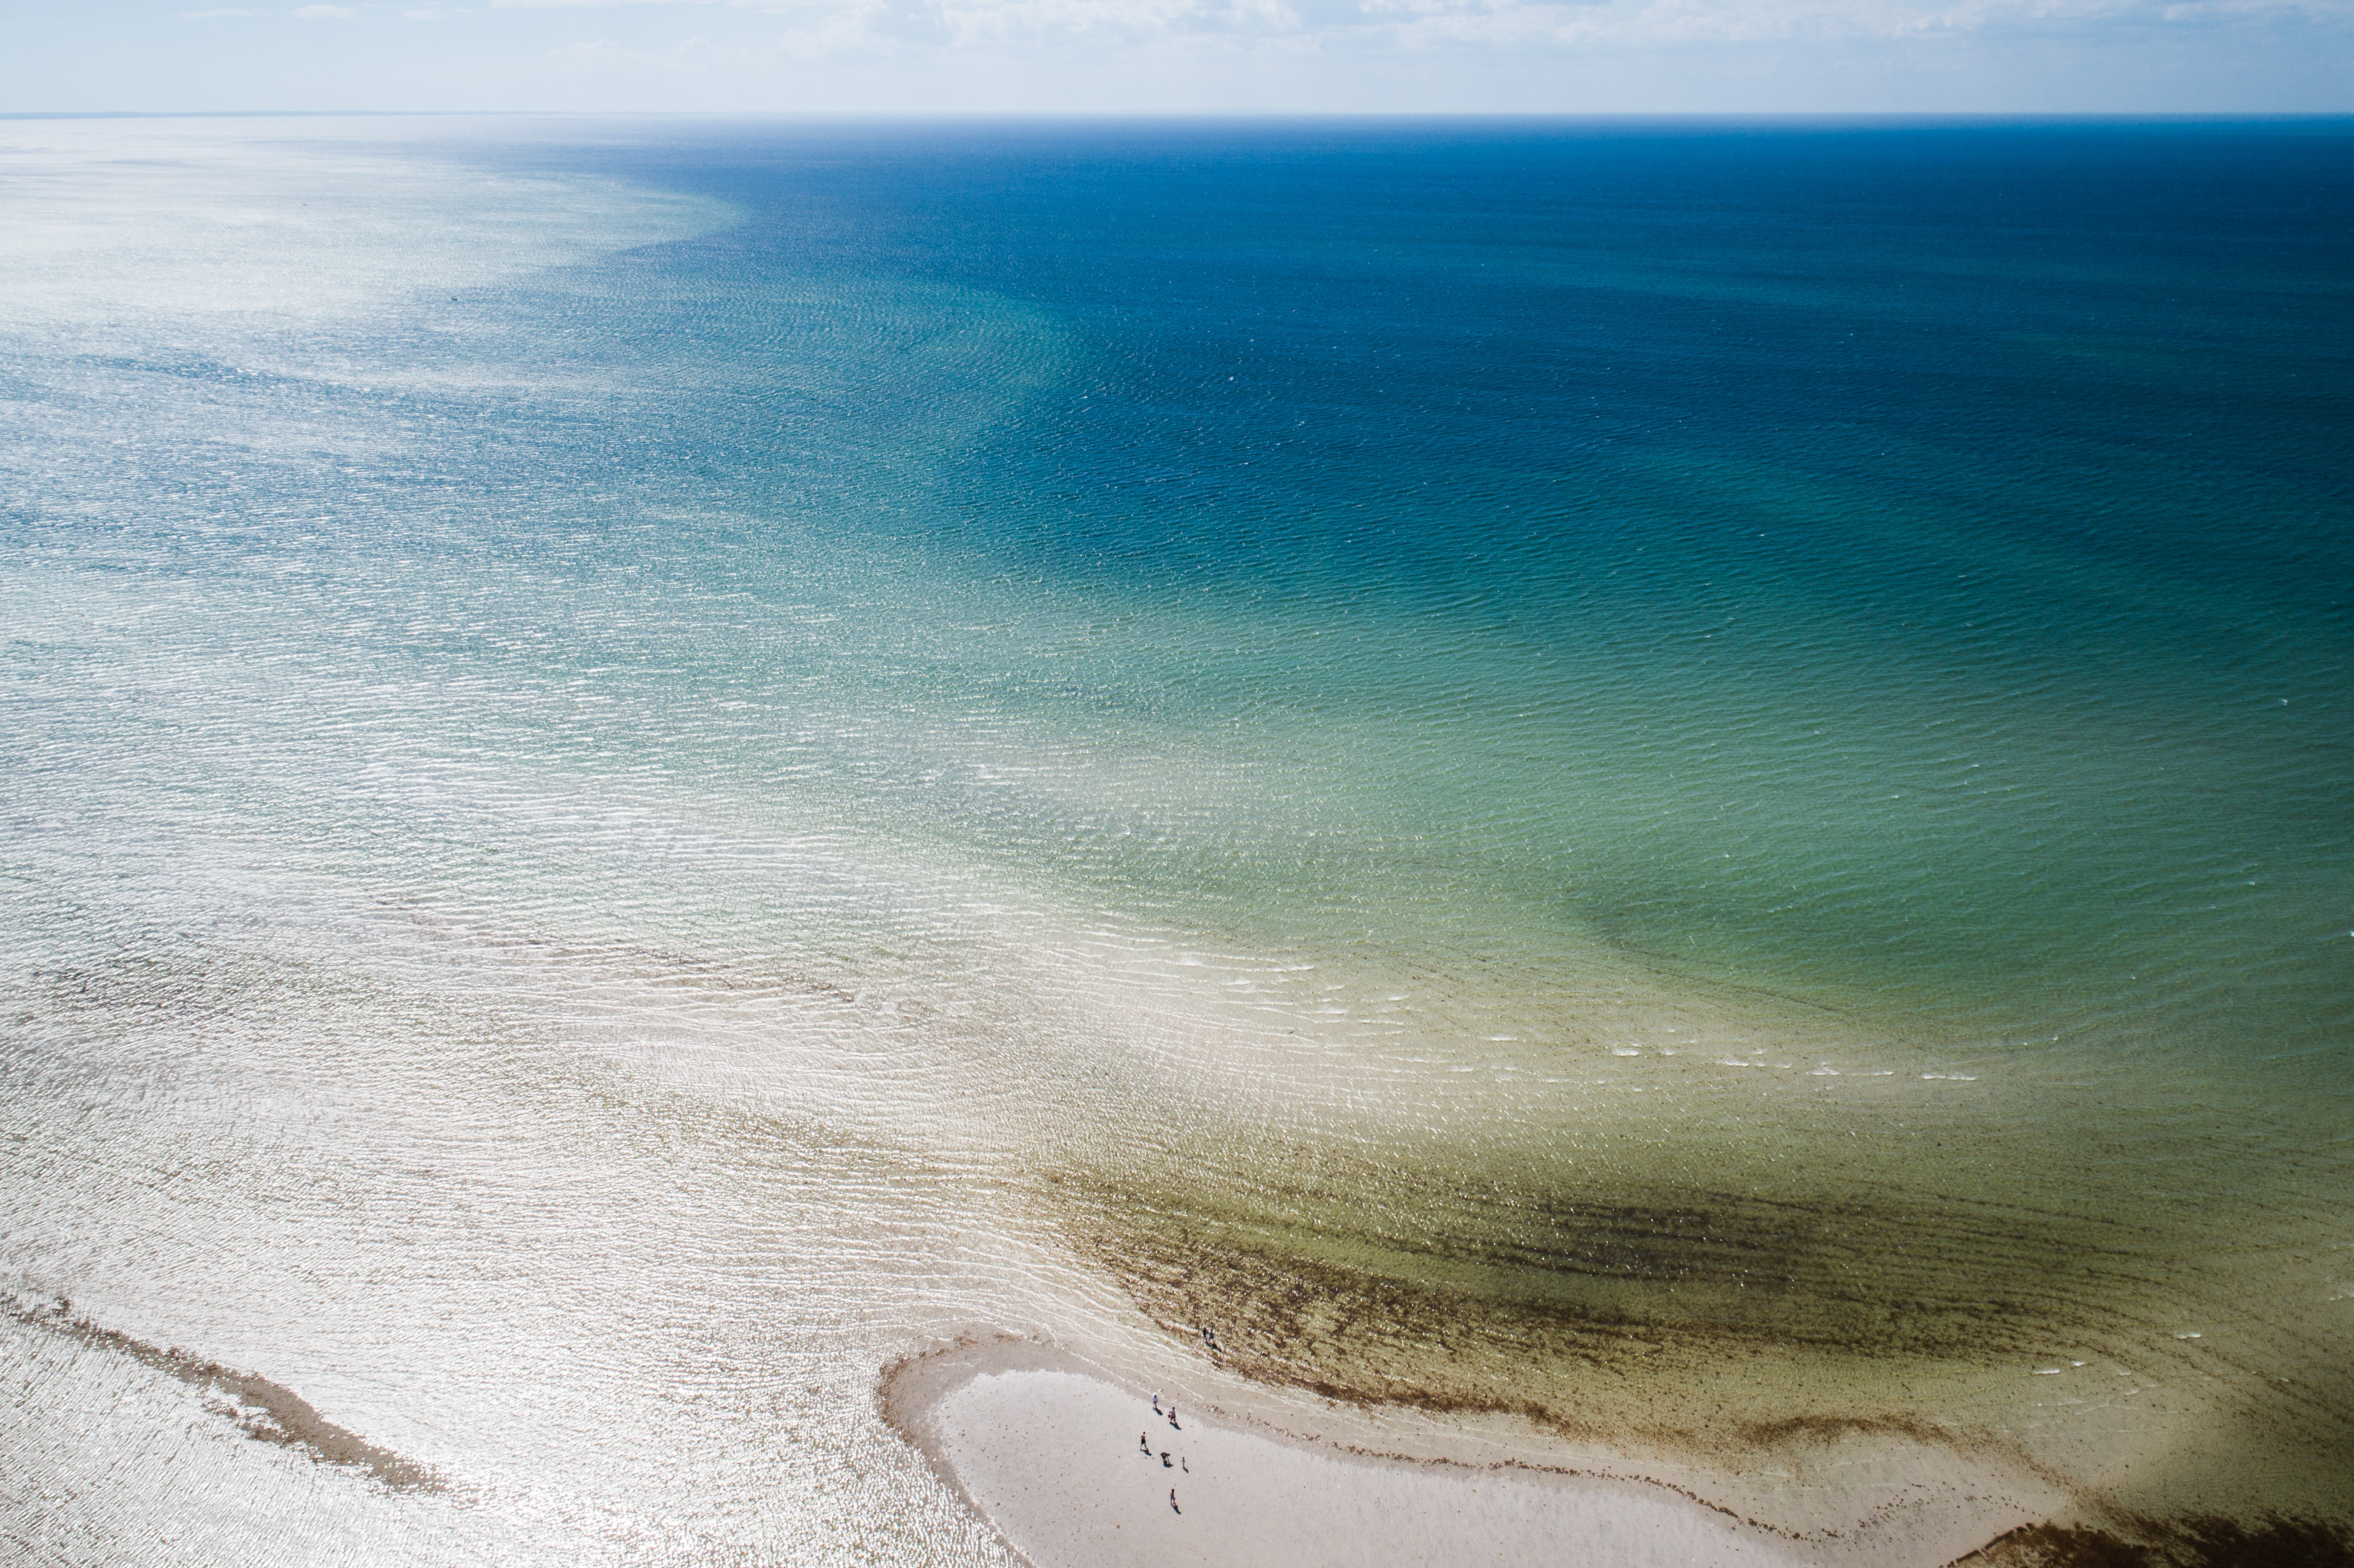 Drone aerial view of the shallow waters near a sand beach at Orleans, Orleans, Massachusetts, United States